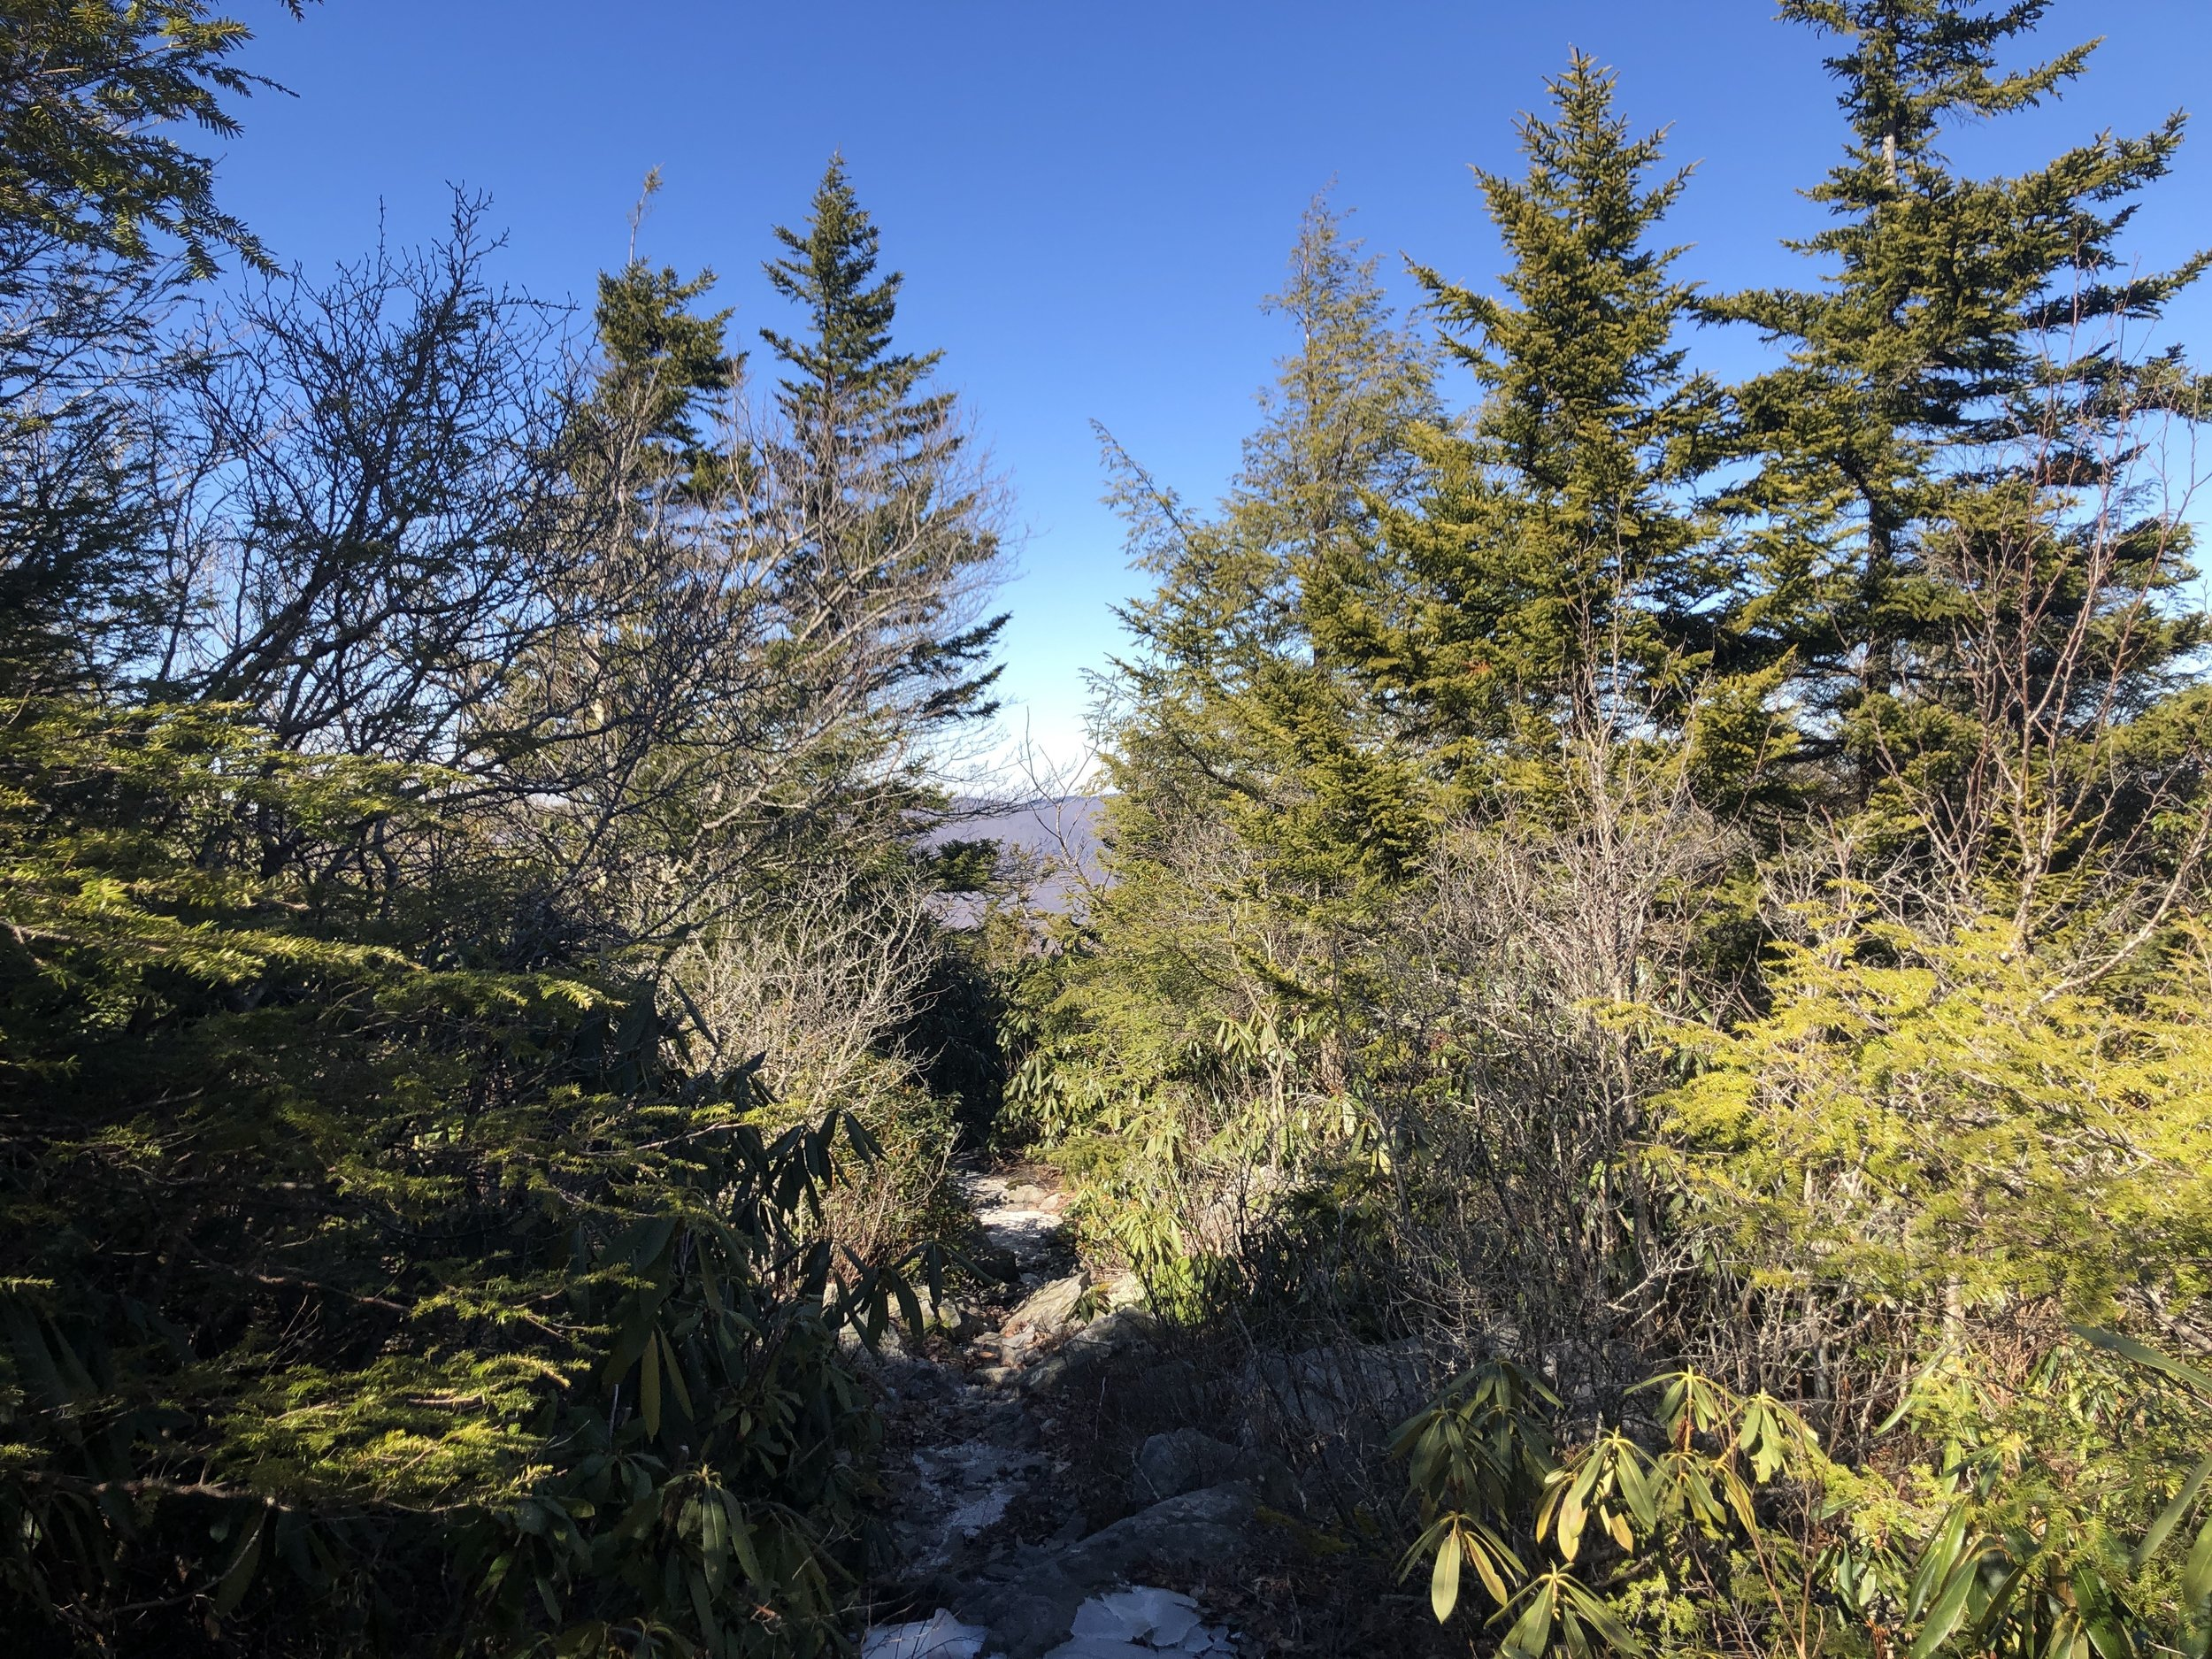 The landscape that held our first audible encounter with the Ruffed Grouse